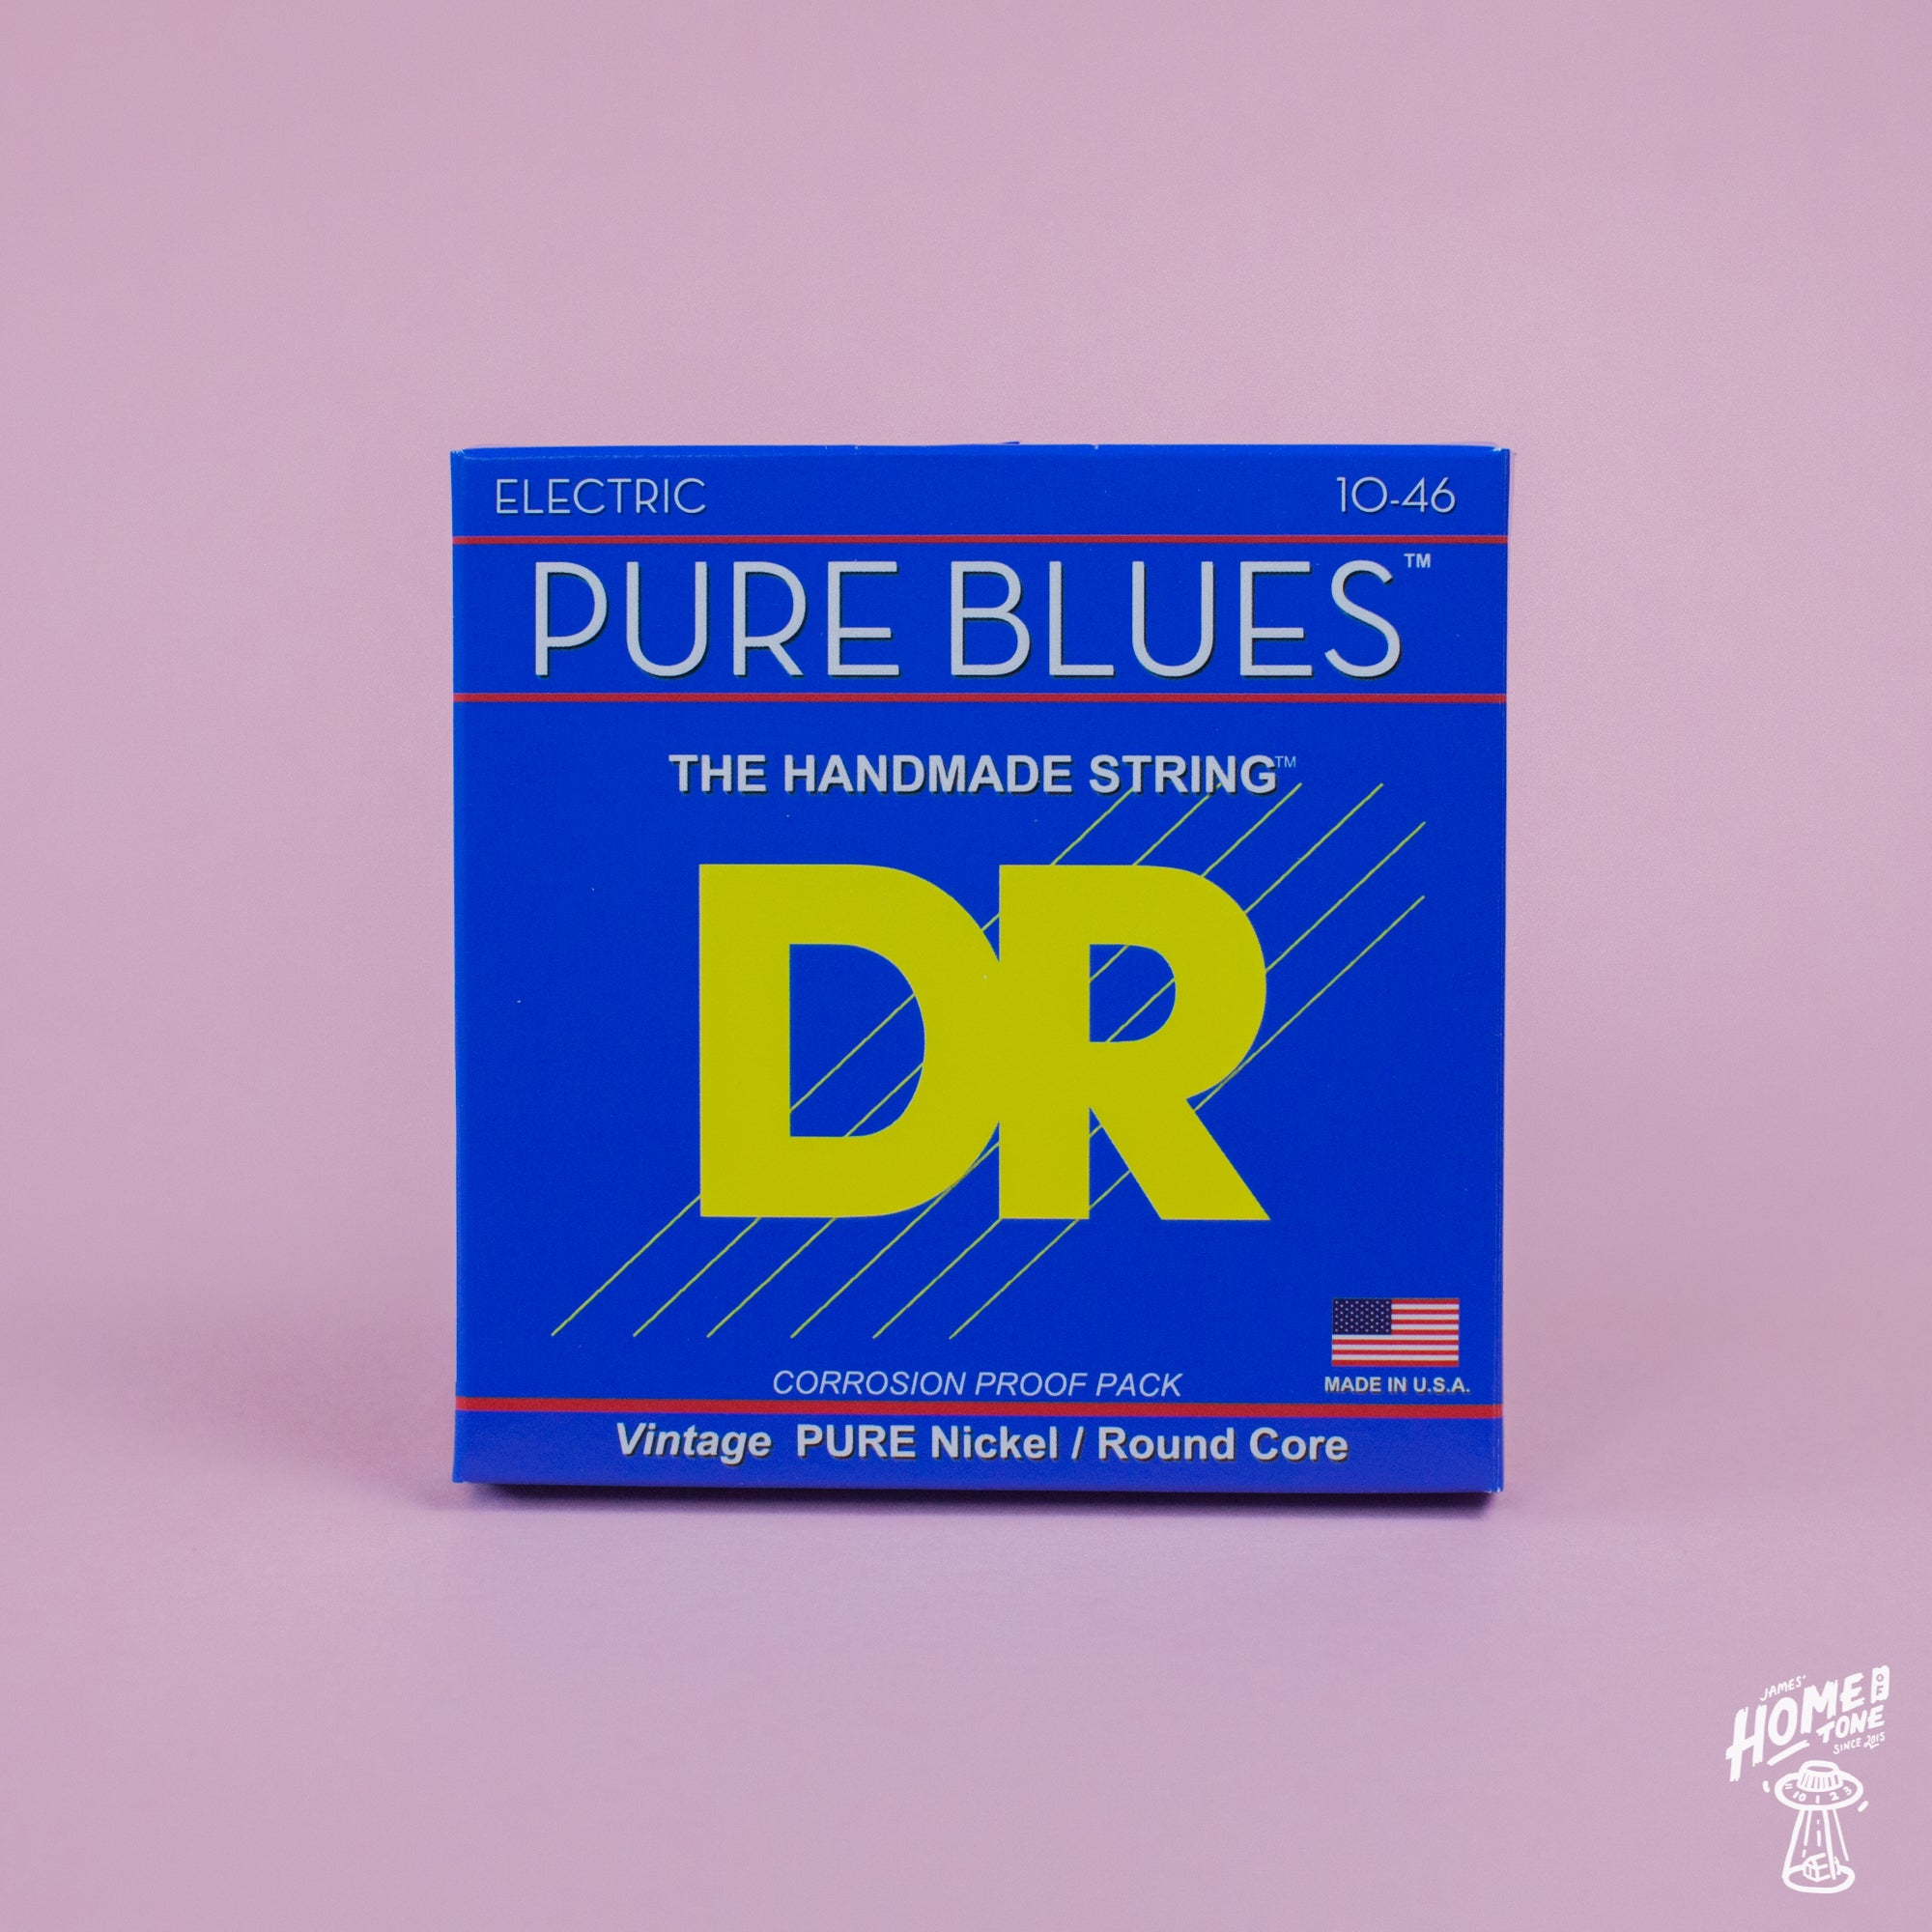 DR Strings join the Home of Tone!